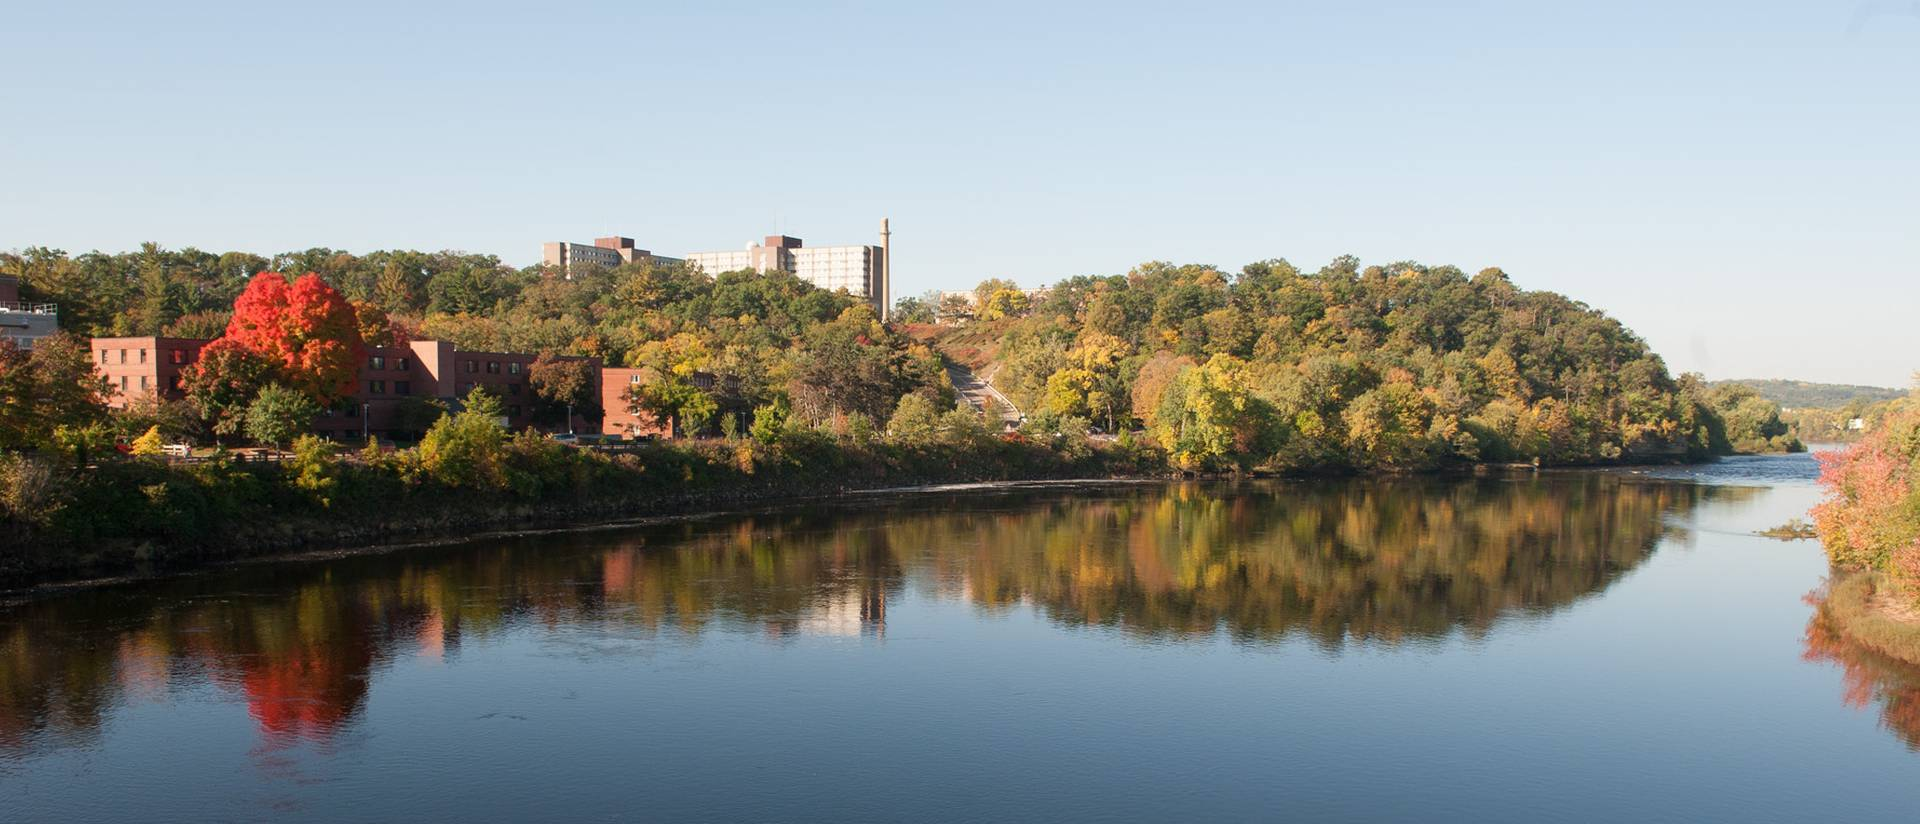 UW-Eau Claire campus and Chippewa River